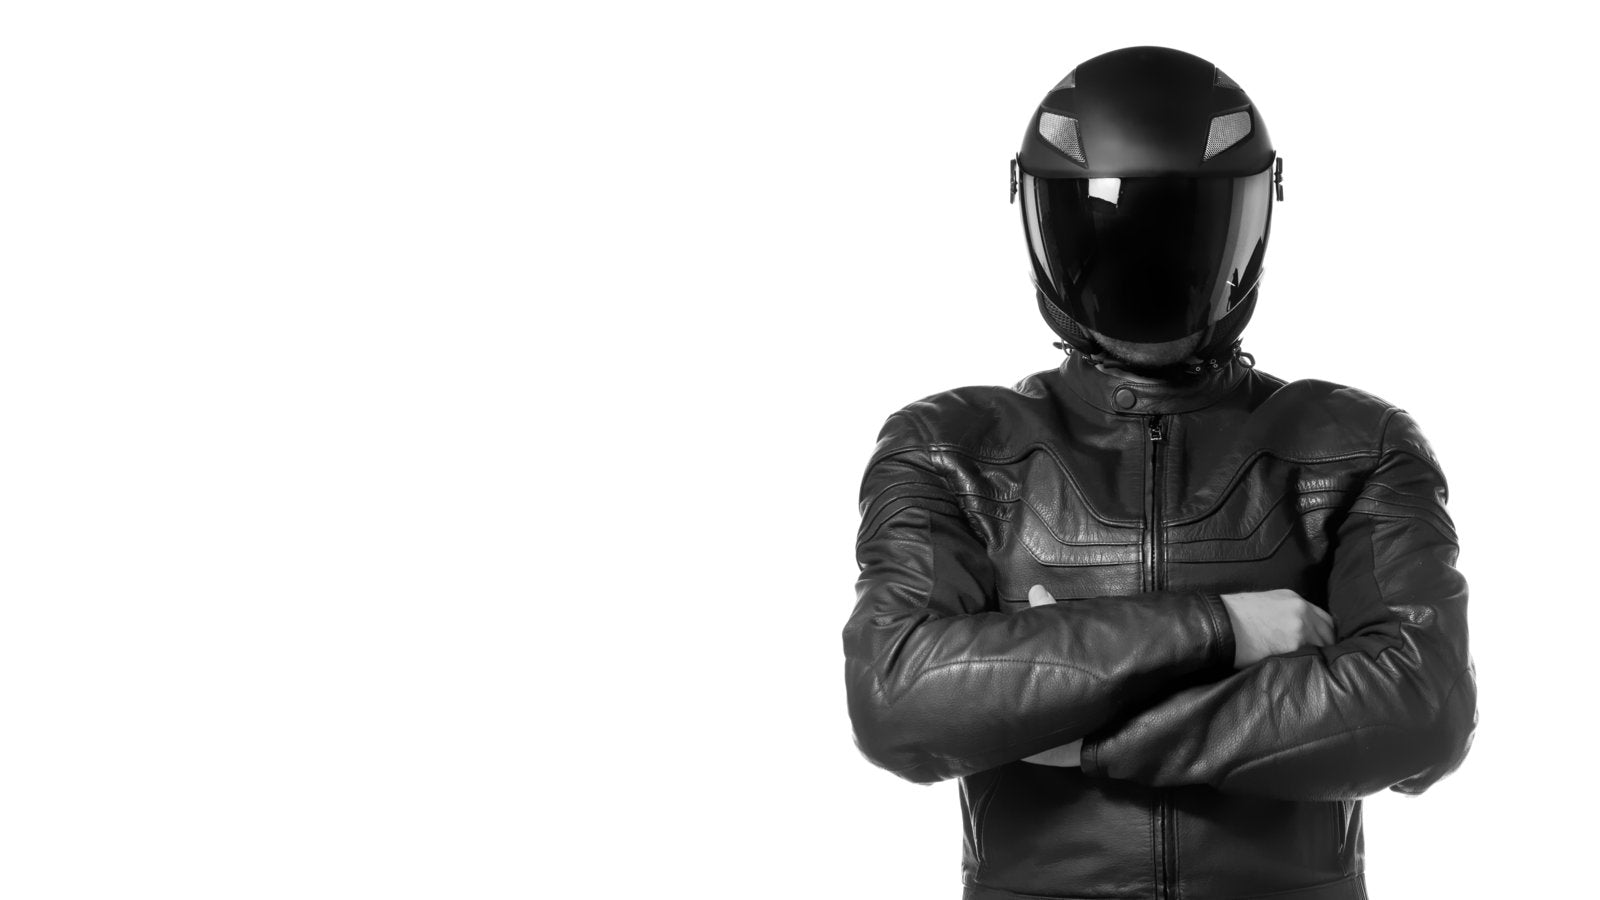 Motorcycle Safety Course 101 - 3 Things You Should Never Ride Without